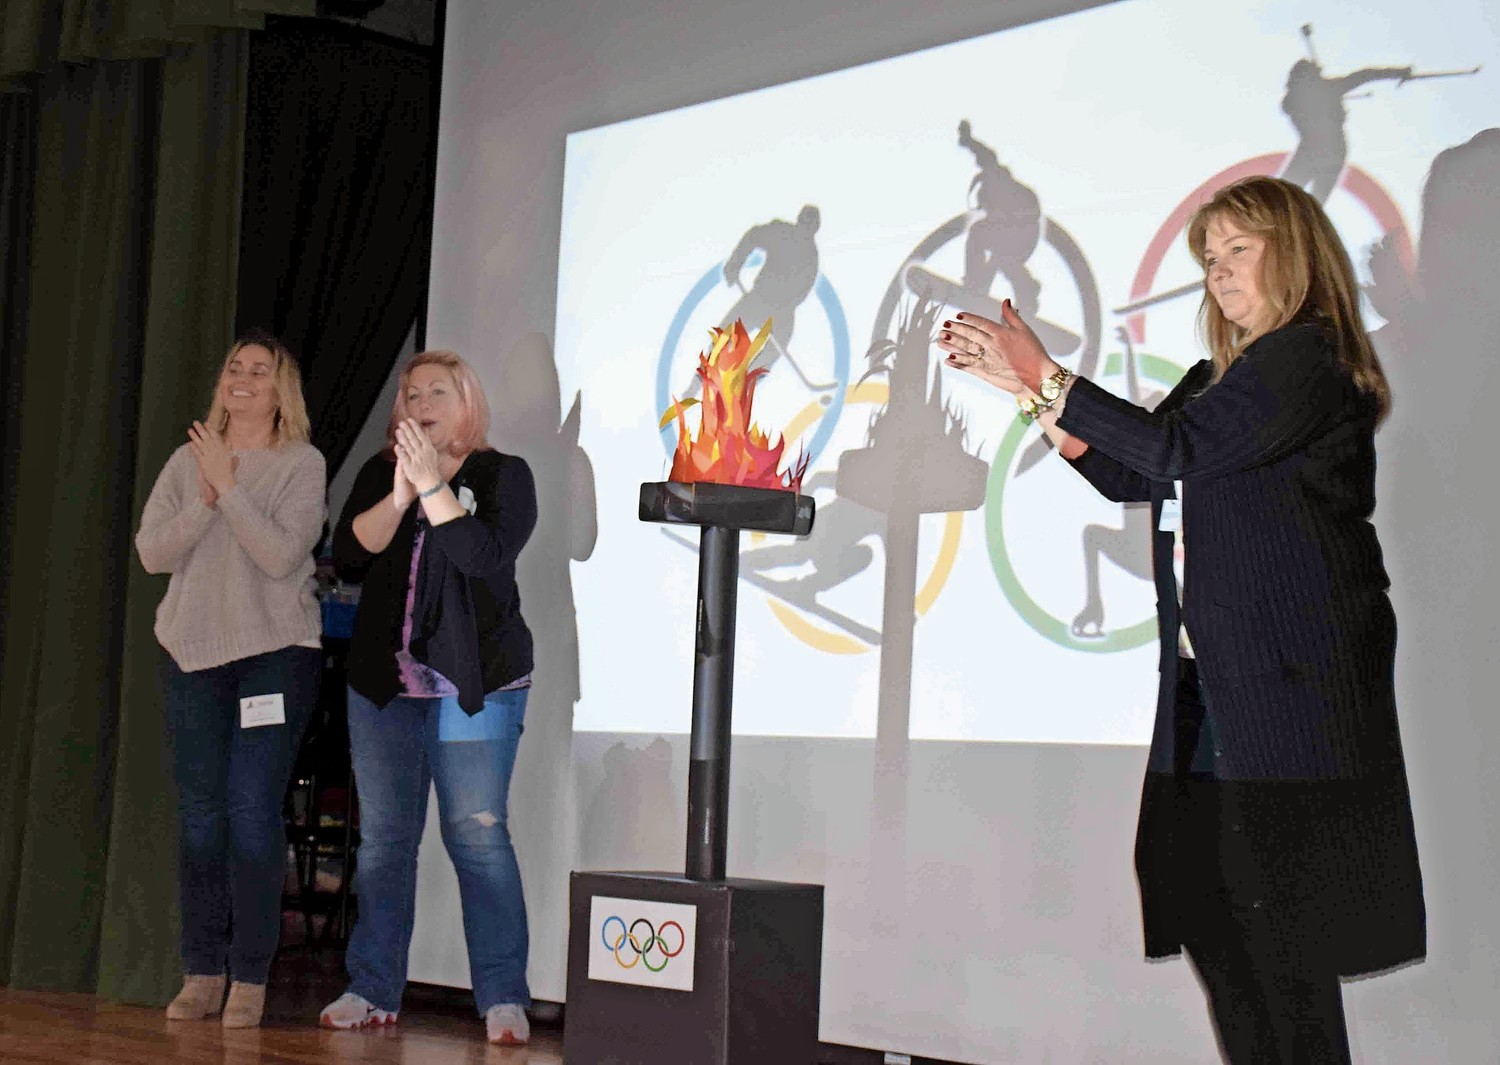 Principal Debra Emmerich, right, and PTA Co-Presidents Lacey Redlefsen and Jessica Schlitter placed the Olympic torch.